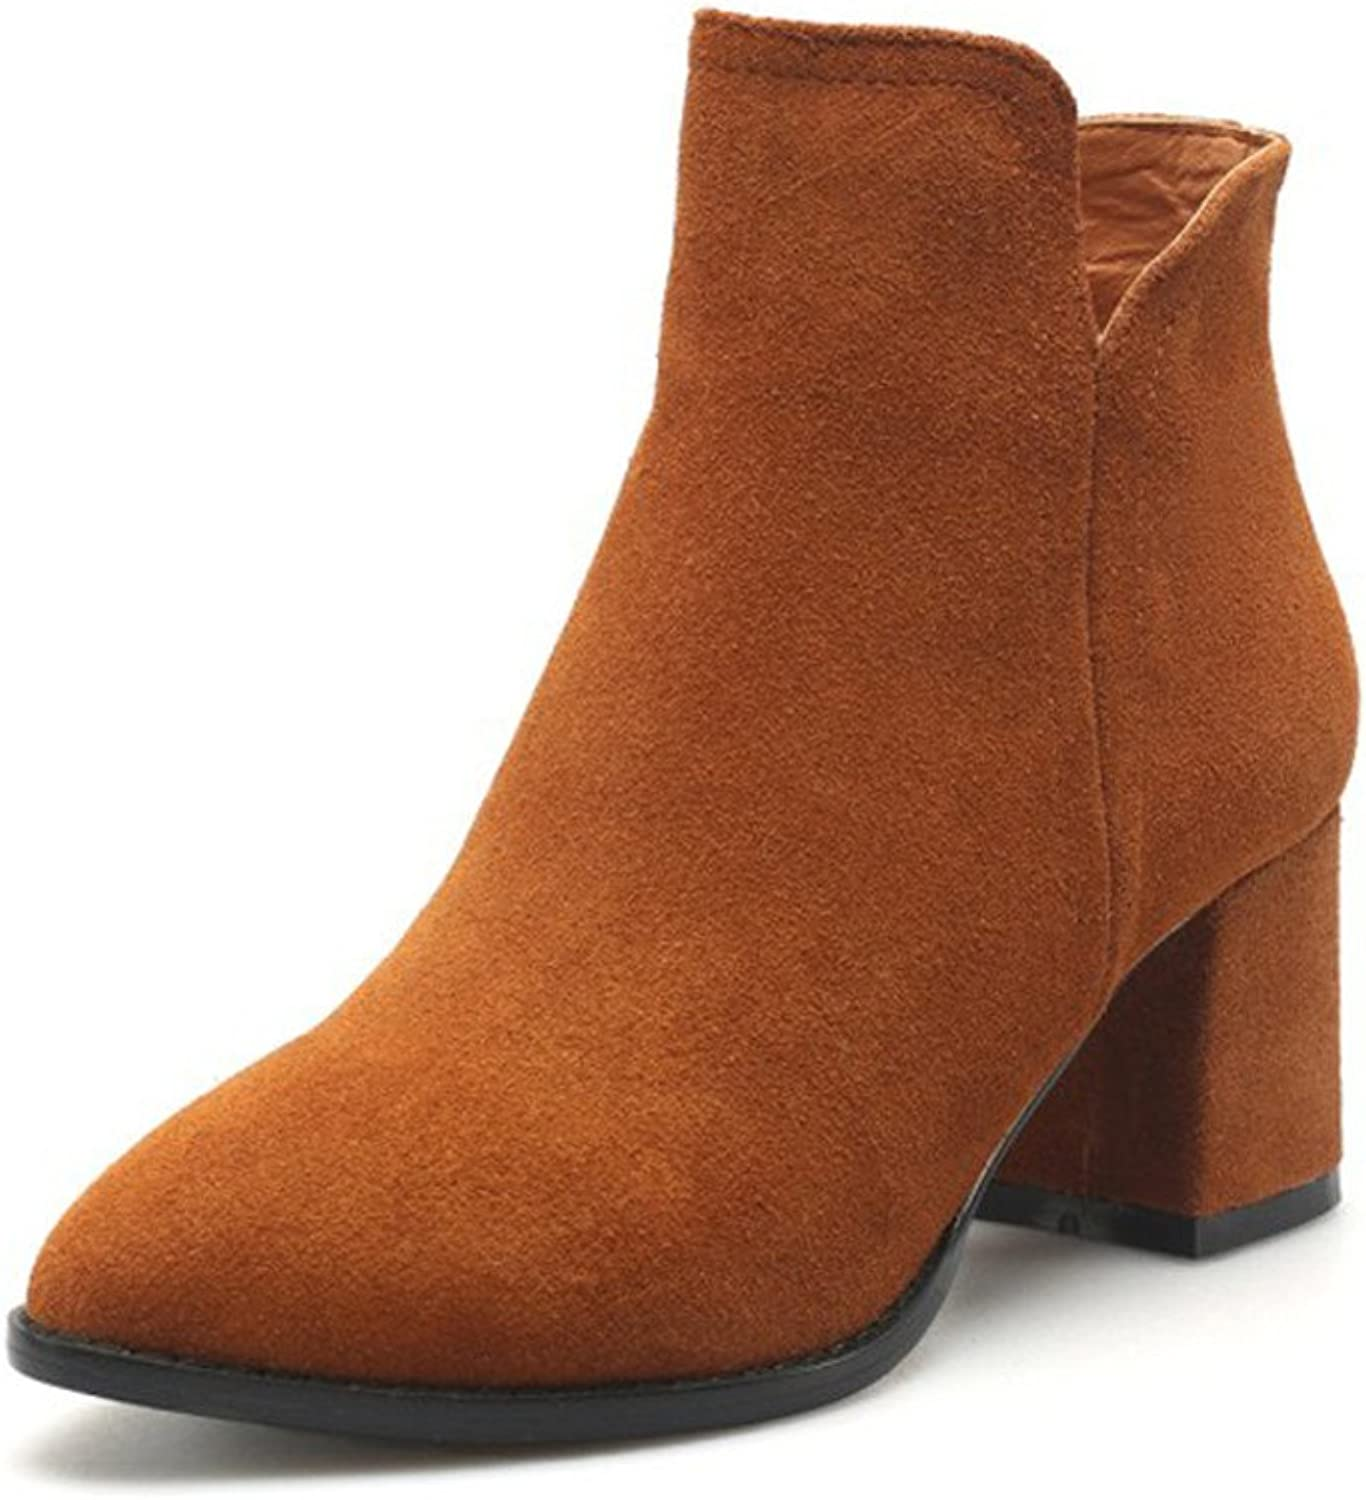 VOCOSI CB-18 Women's Round Pointy-toe Block Heels shoes Usual Dress Booties Ankle Boot